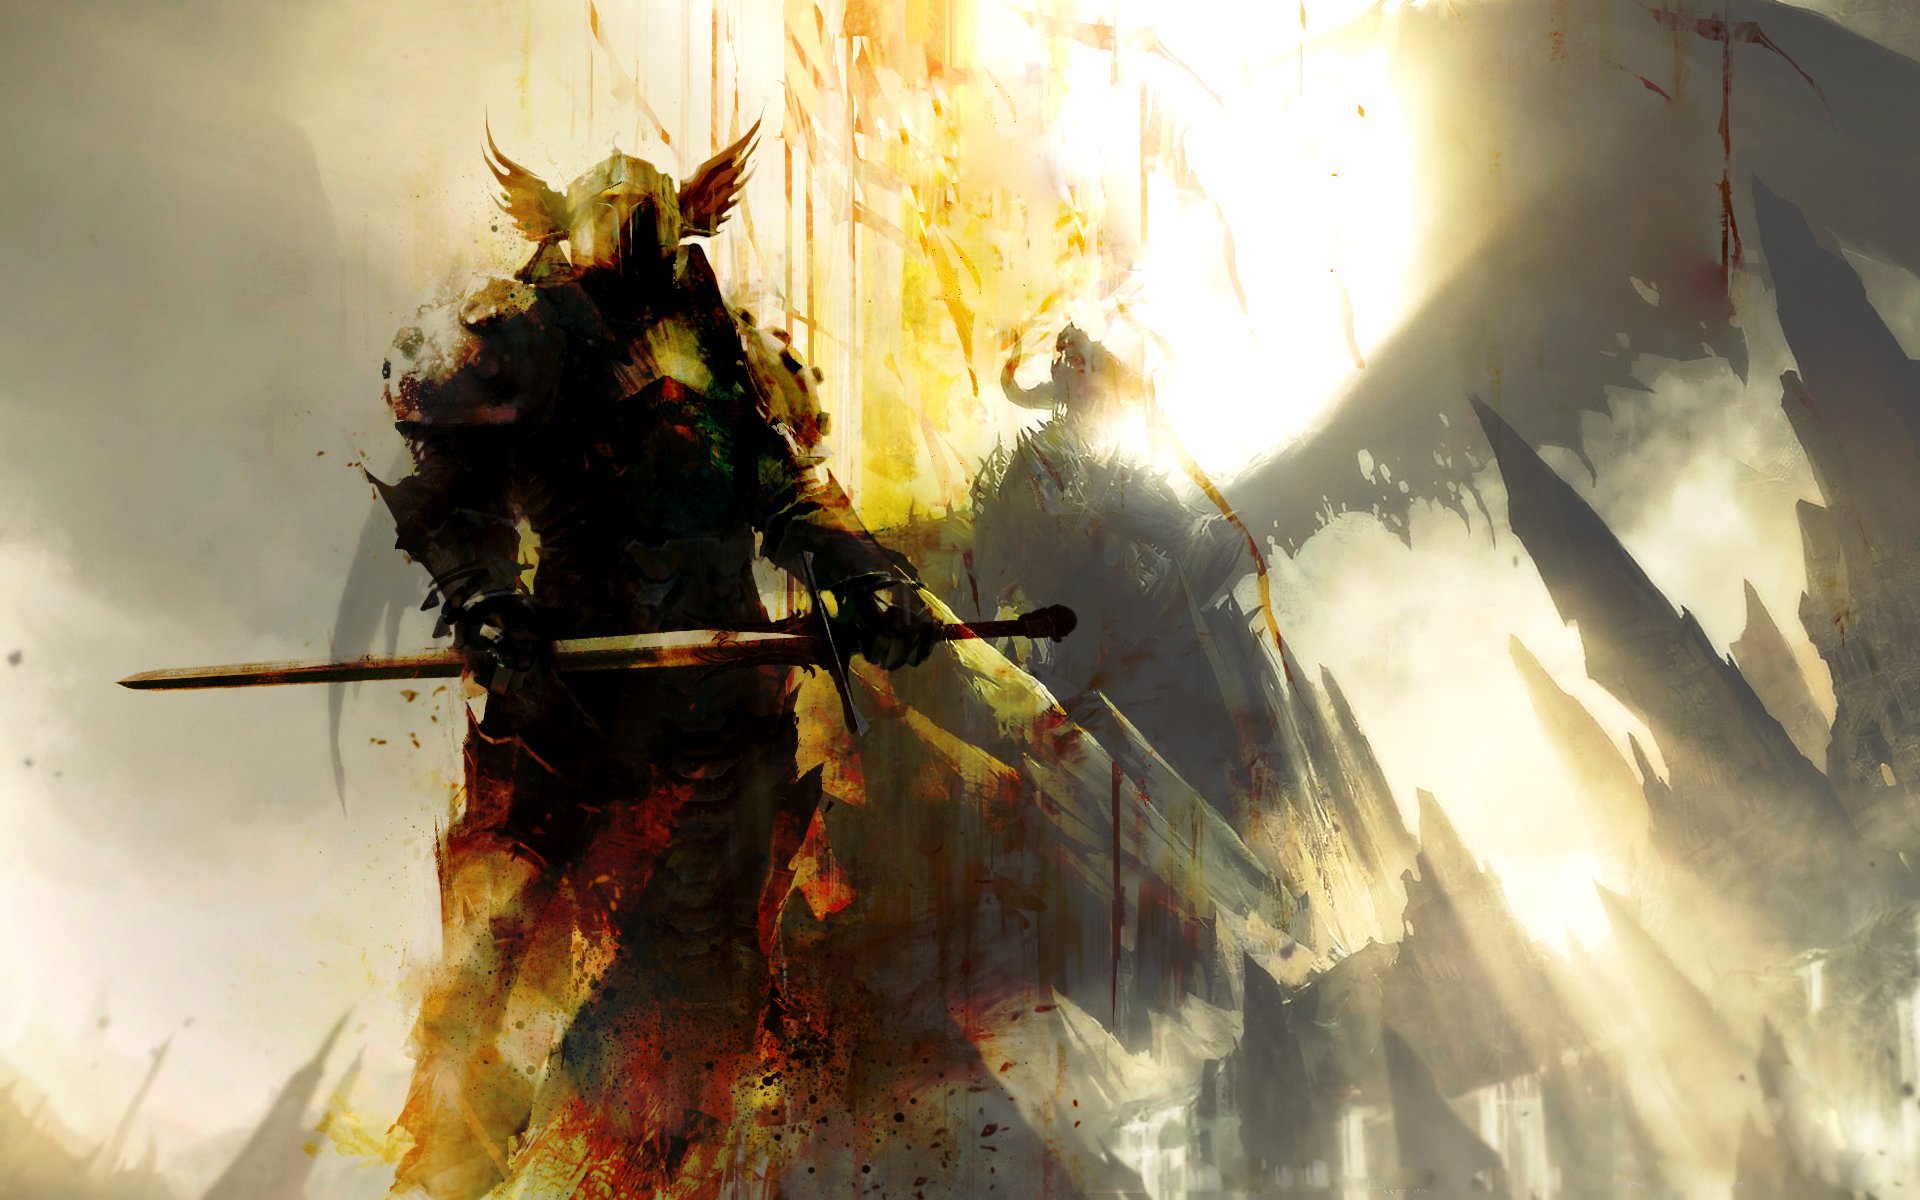 Free Download Guild Wars 2 Wallpapers Hd 455954 1920x1200 For